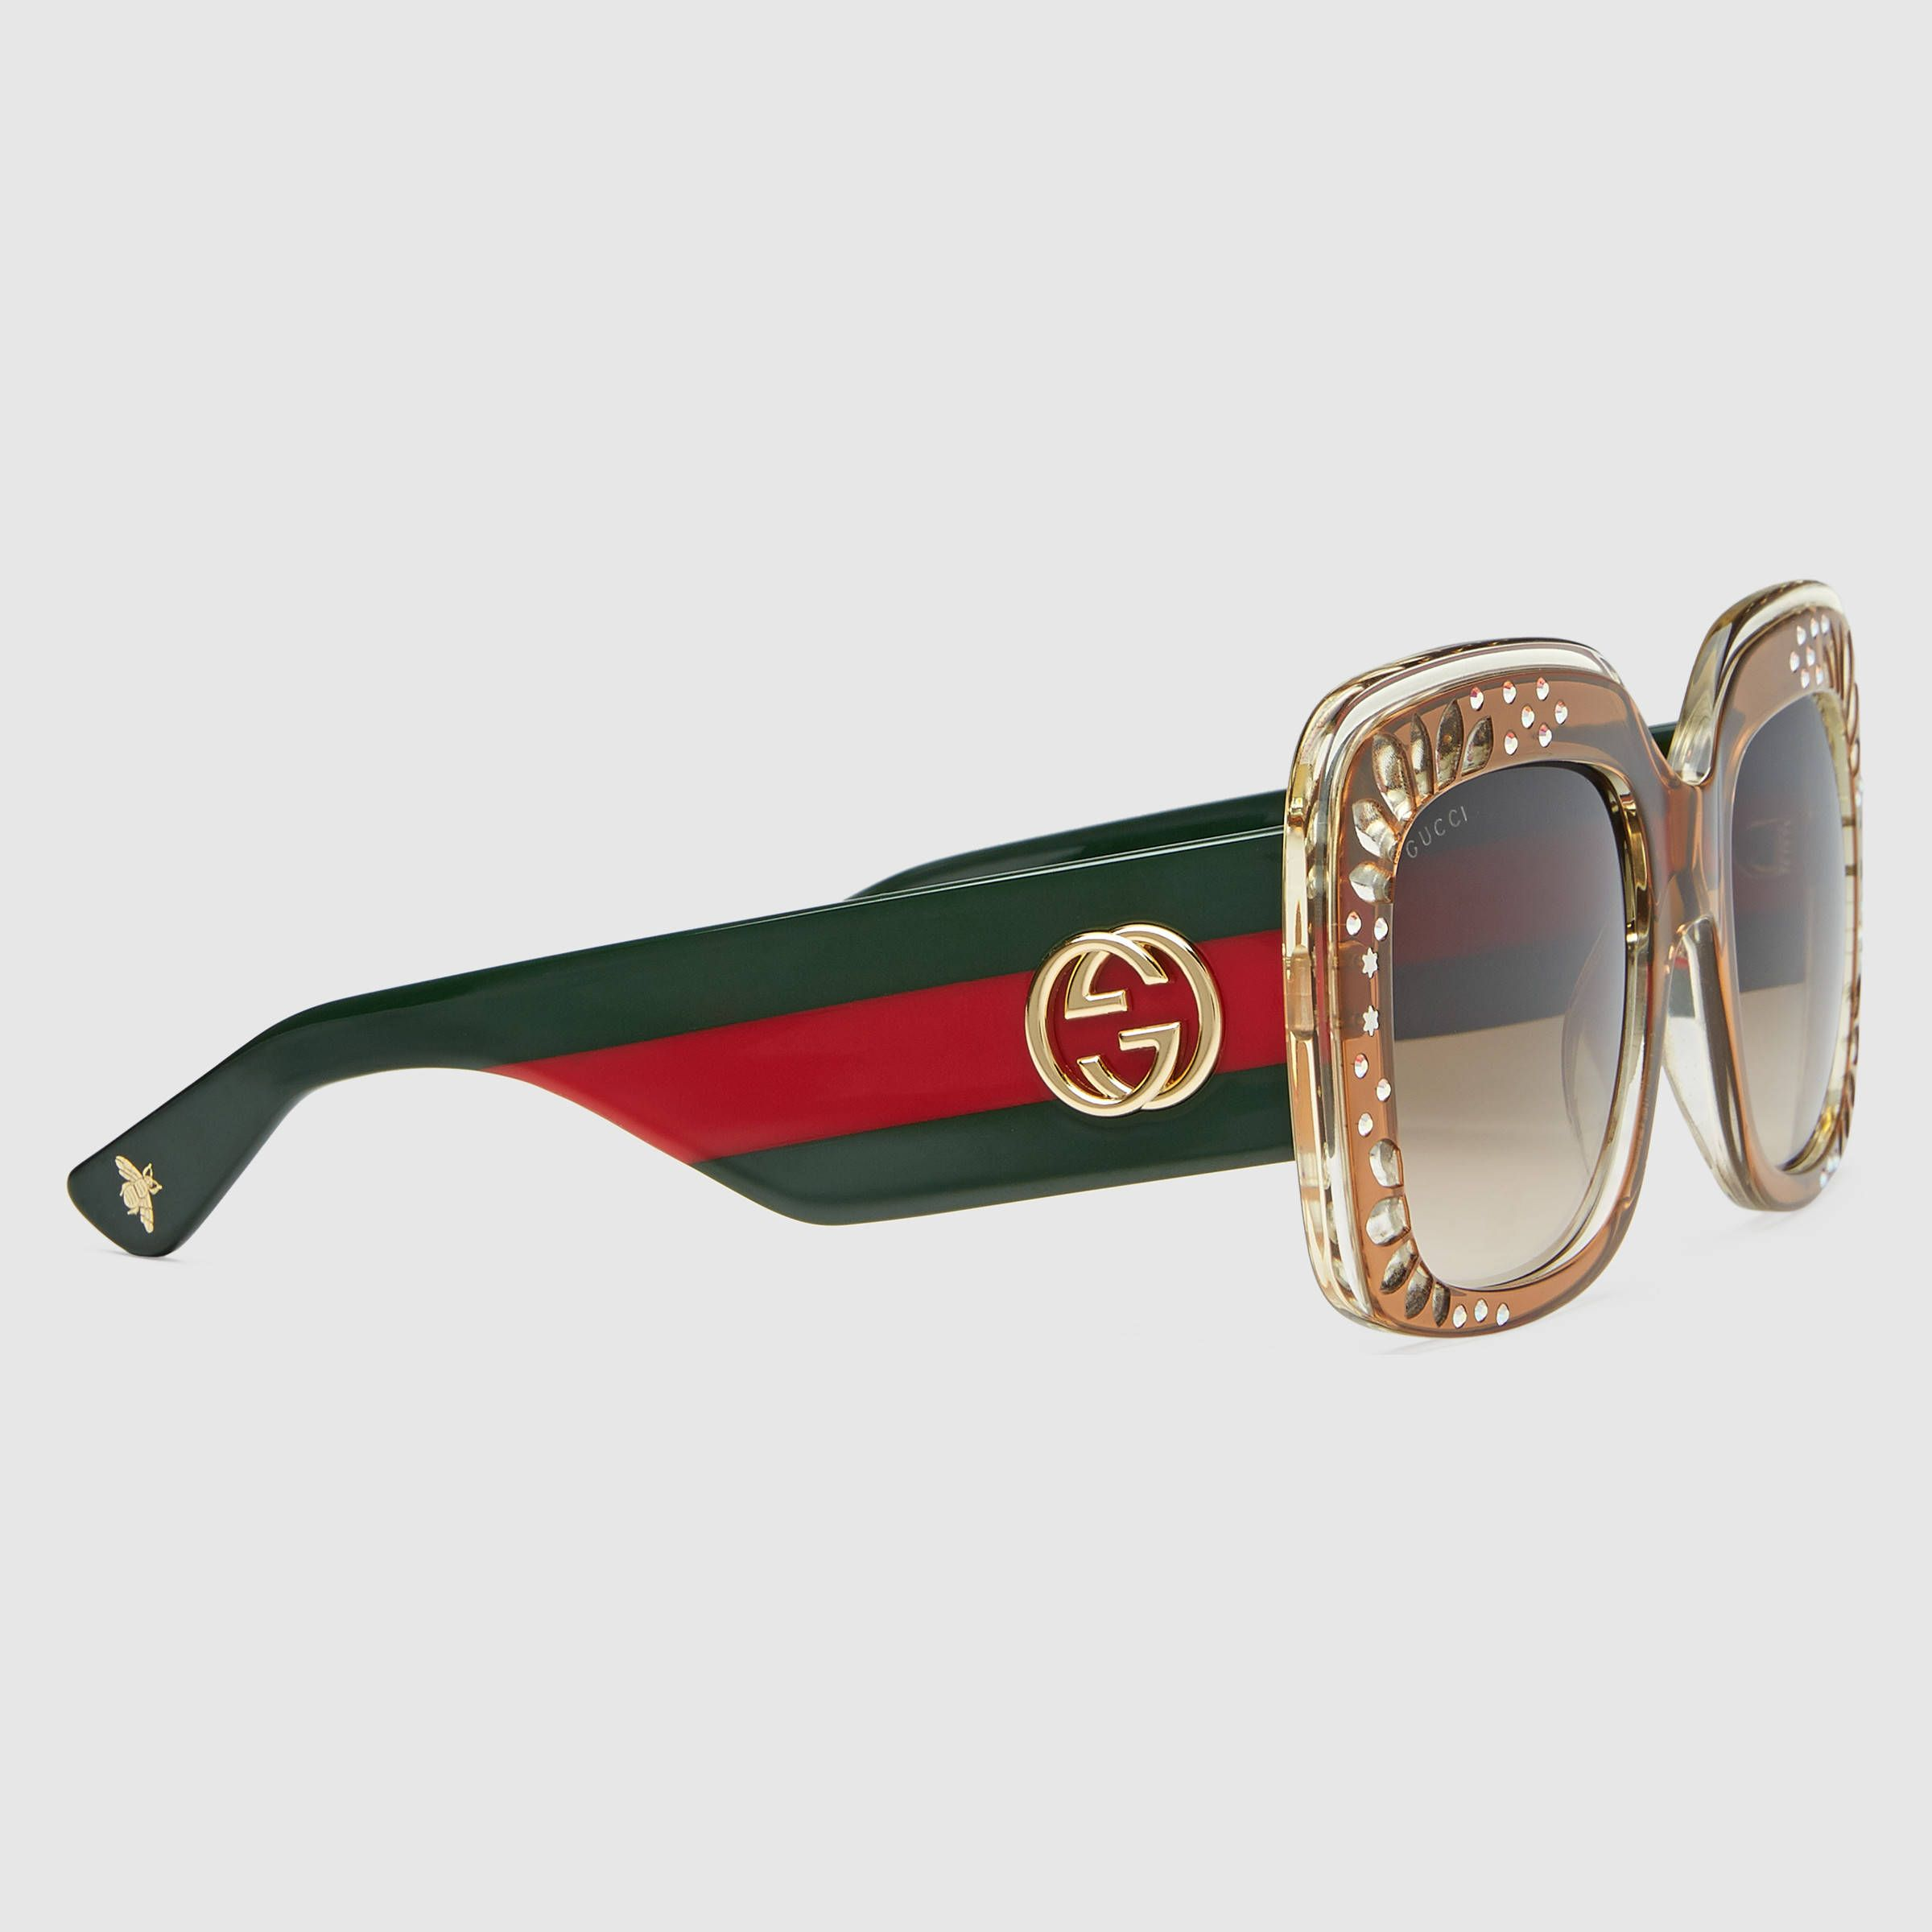 808469cd6 Gucci Women. Oversize square-frame rhinestone sunglasses. | Throwing ...